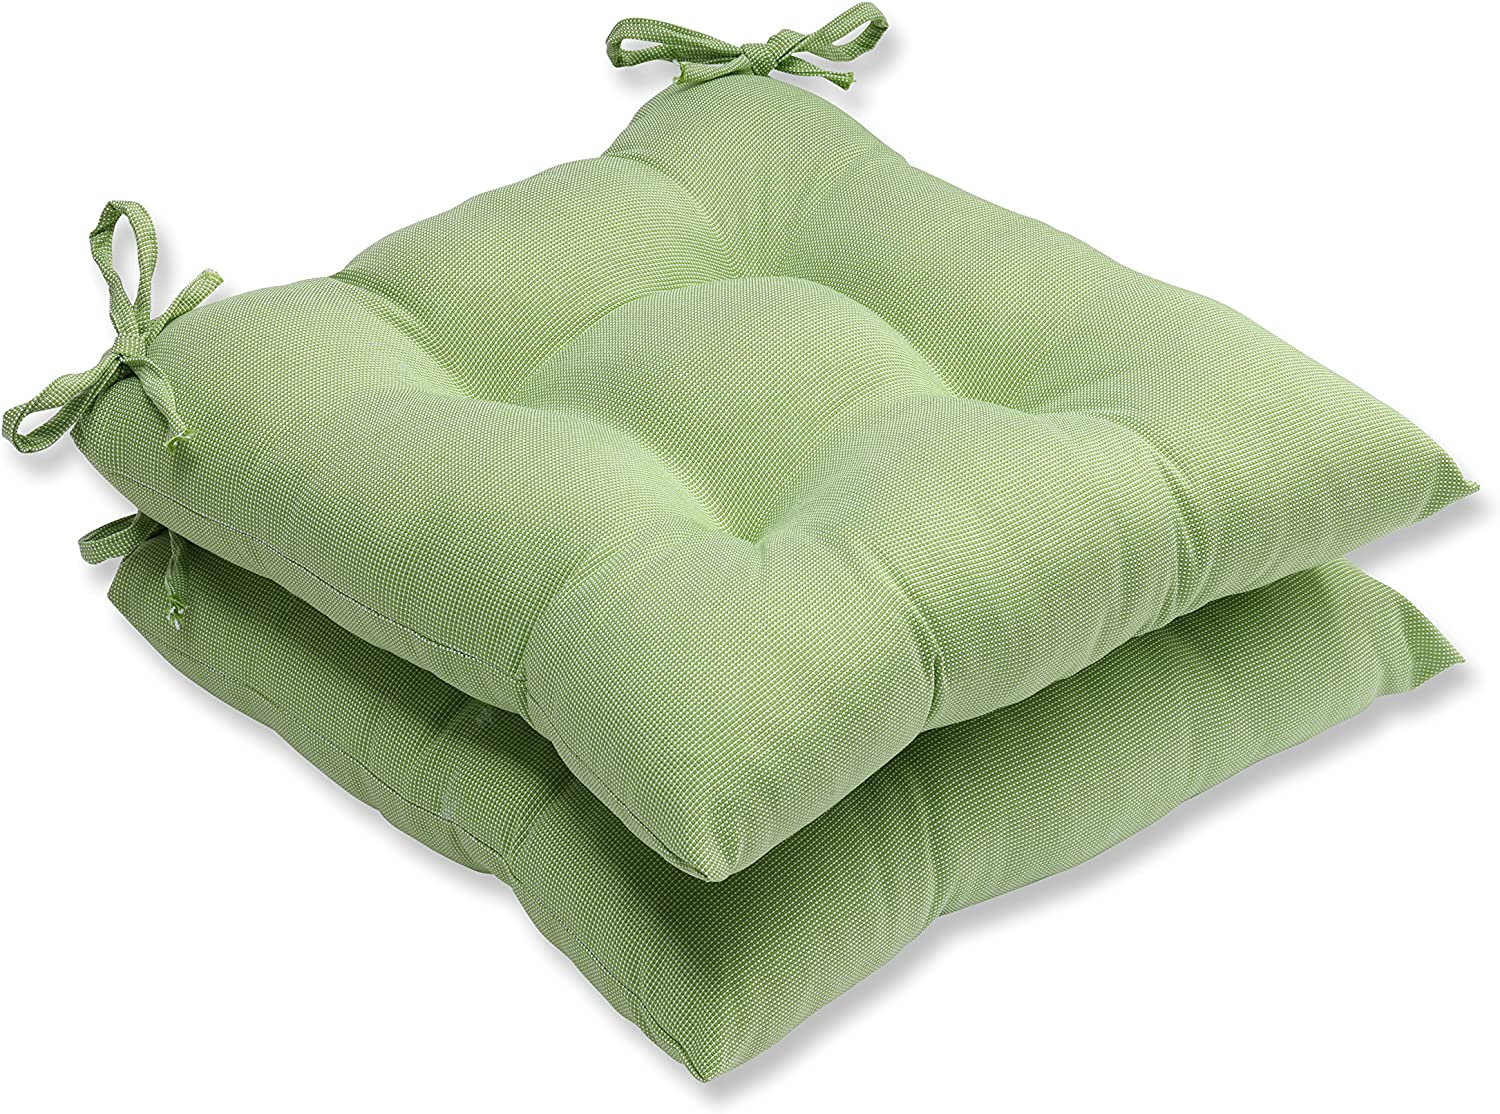 Pillow Perfect Outdoor Indoor Tweed Wrought Iron Seat Cushion Set of 2 , Lime